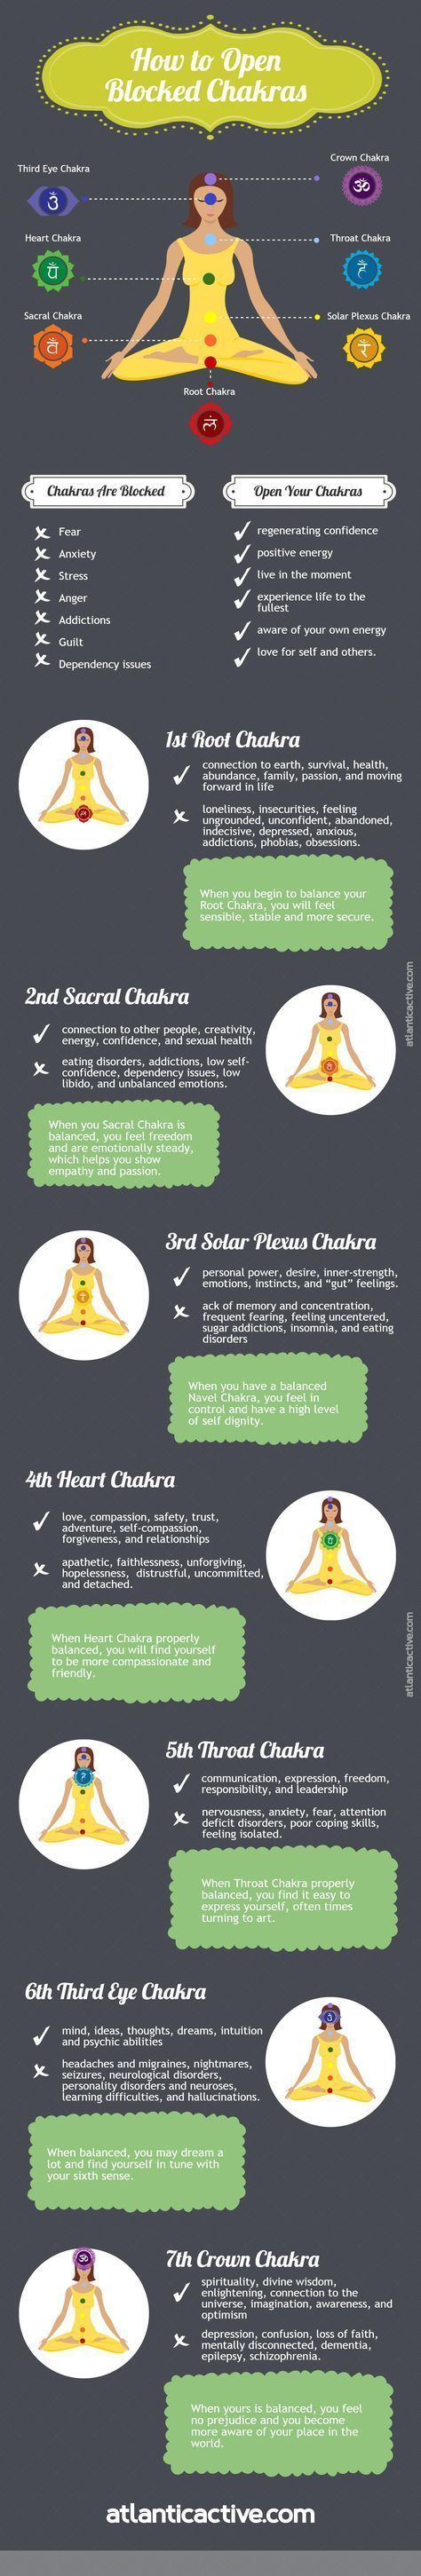 Warning Signs Your Chakras Are Out Of Balance | How to Fix Them? Chakra Opening: Things You Can Do To Open and Heal Each Chakra #Infographic #Infografía